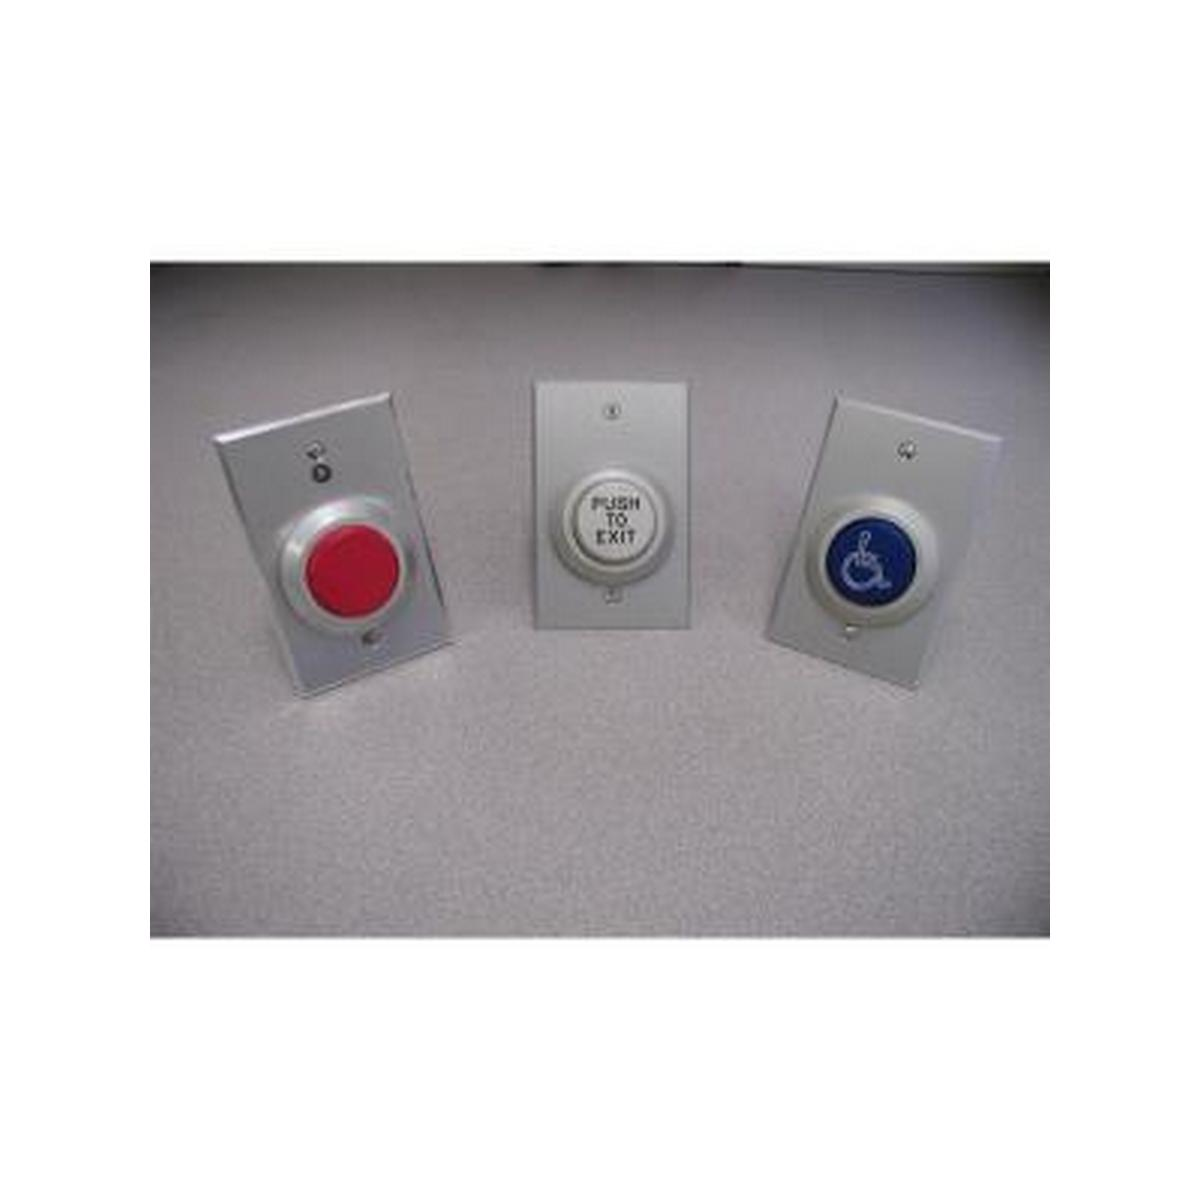 Dortronics W5287-AT  PTD Electronic timer 2-60 second adjustable, single gang switch plate